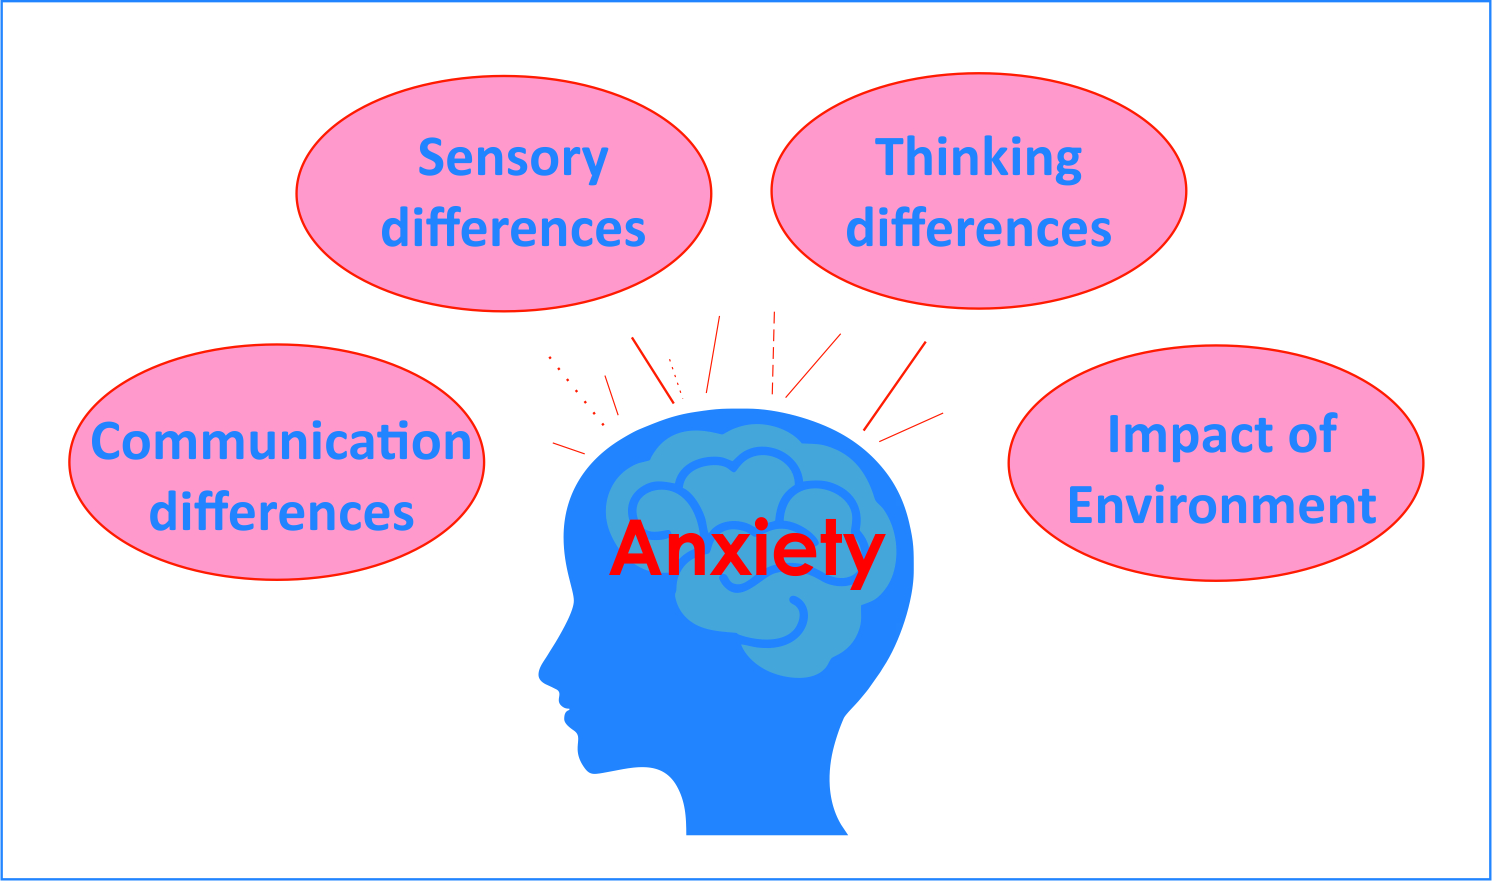 This image highlights how anxiety can impact on the four core areas of autism